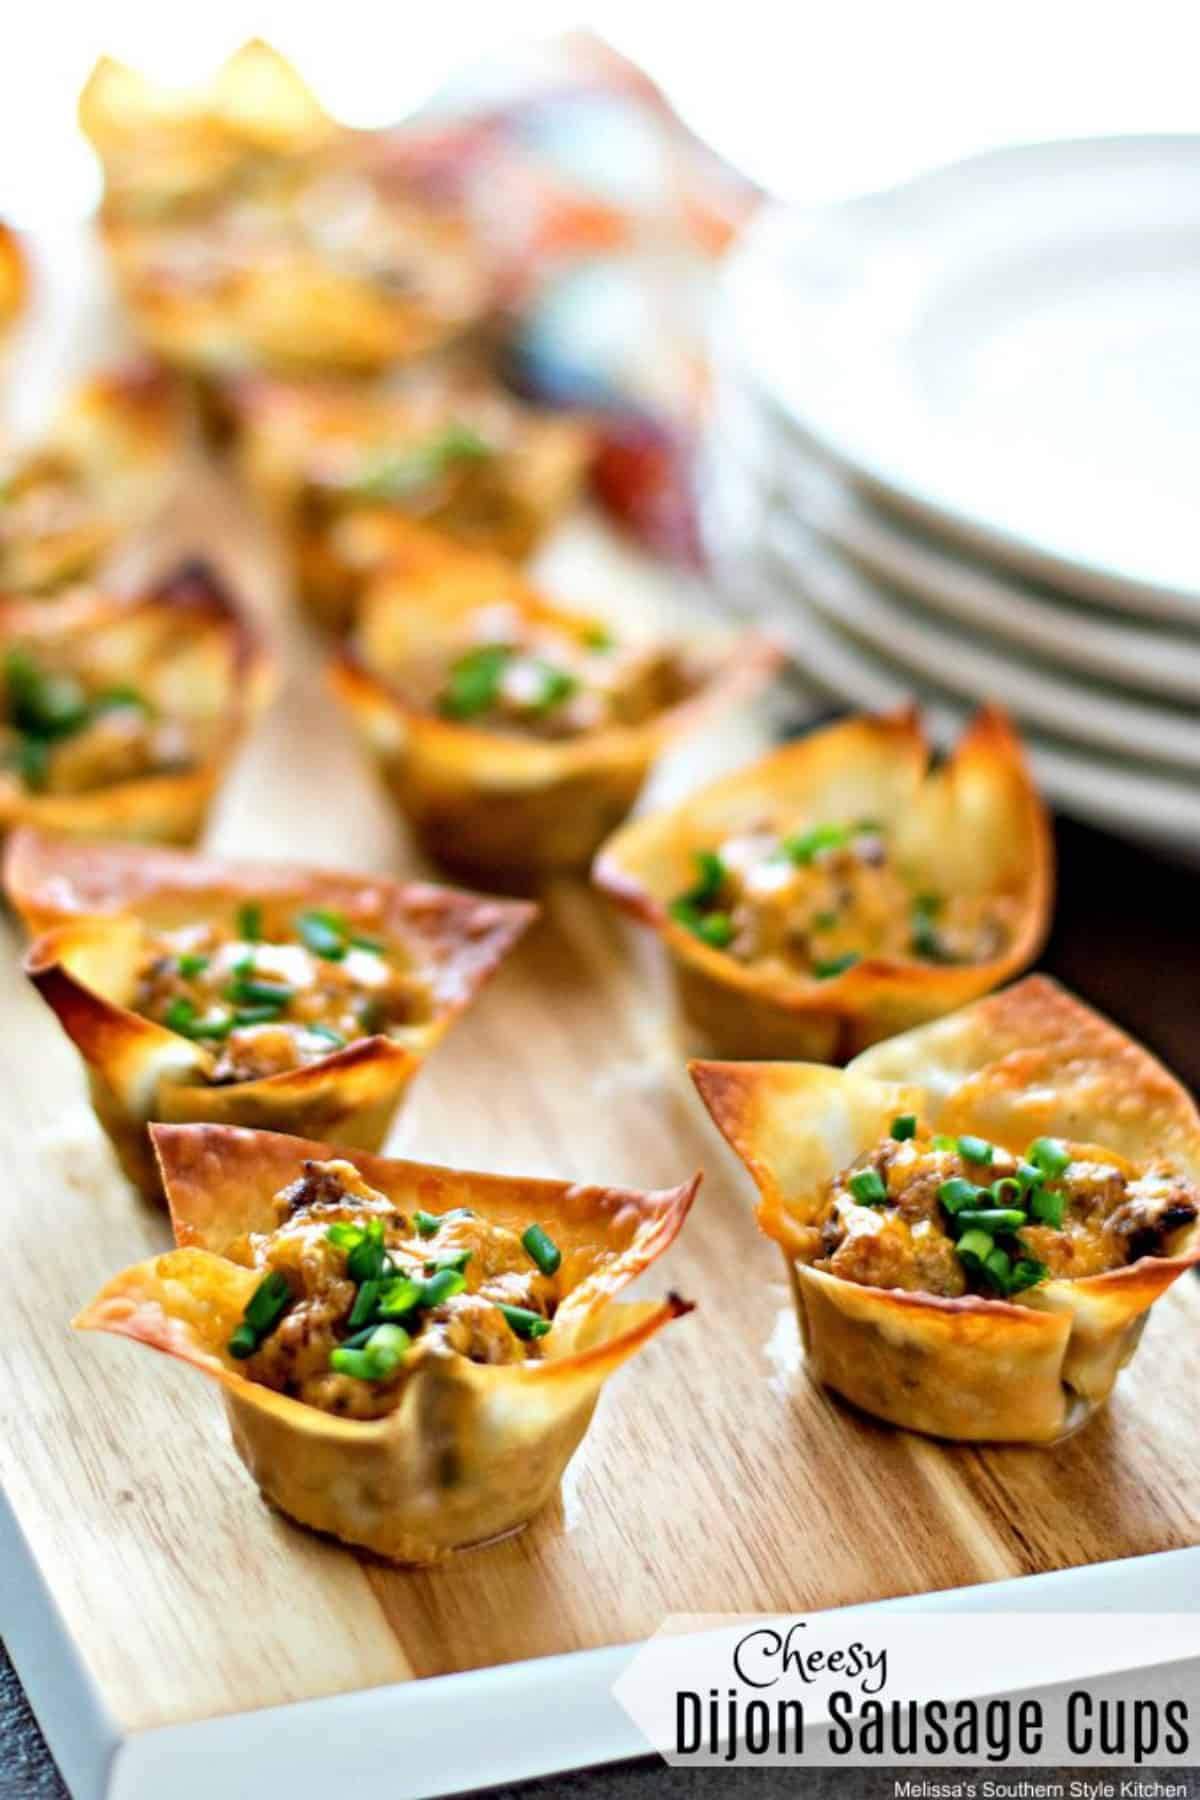 Cheesy dijon sausage cups on a wooden serving board